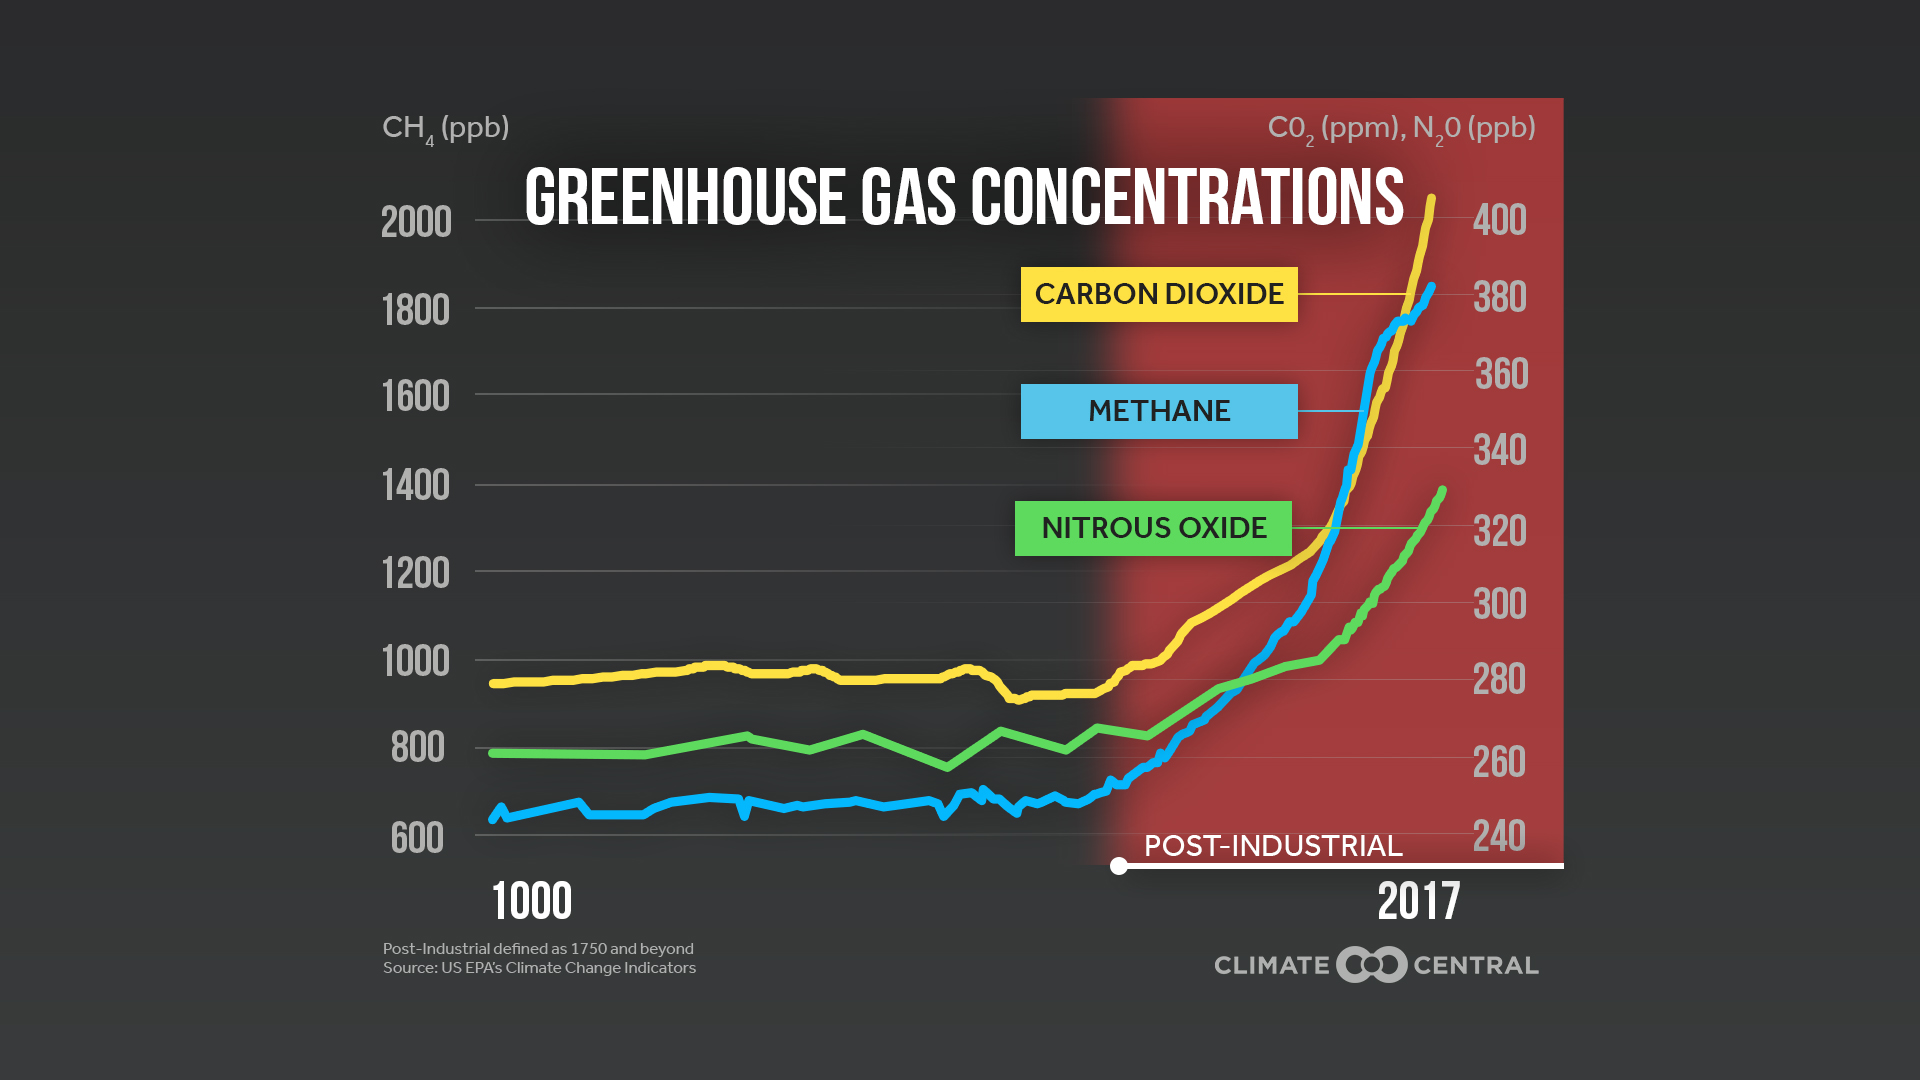 Greenhouse Gas Concentrations